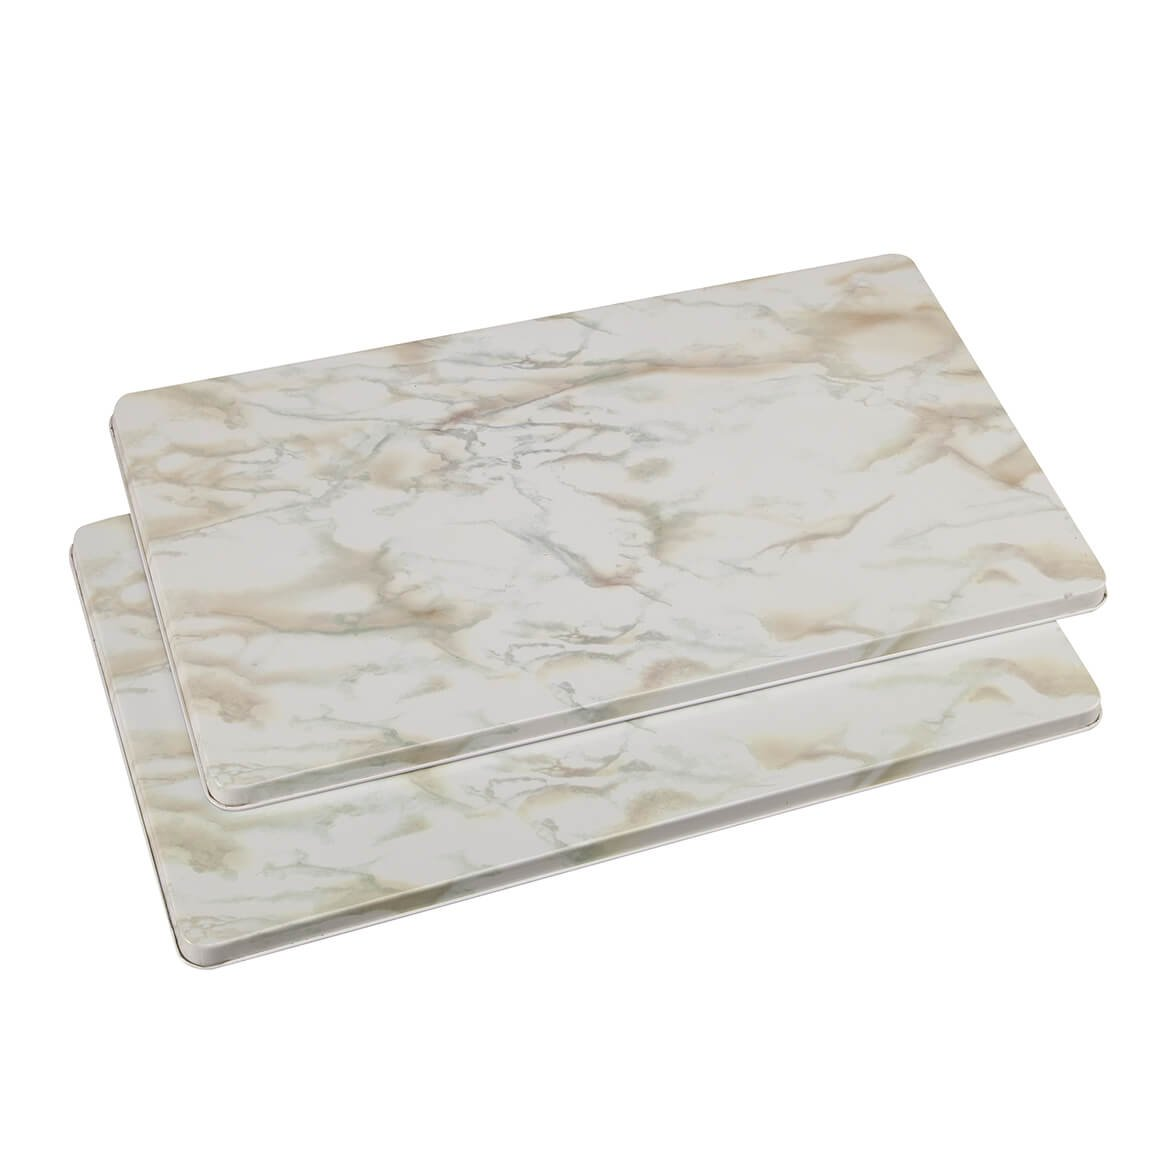 Marble Burner Covers Set of 2 - White